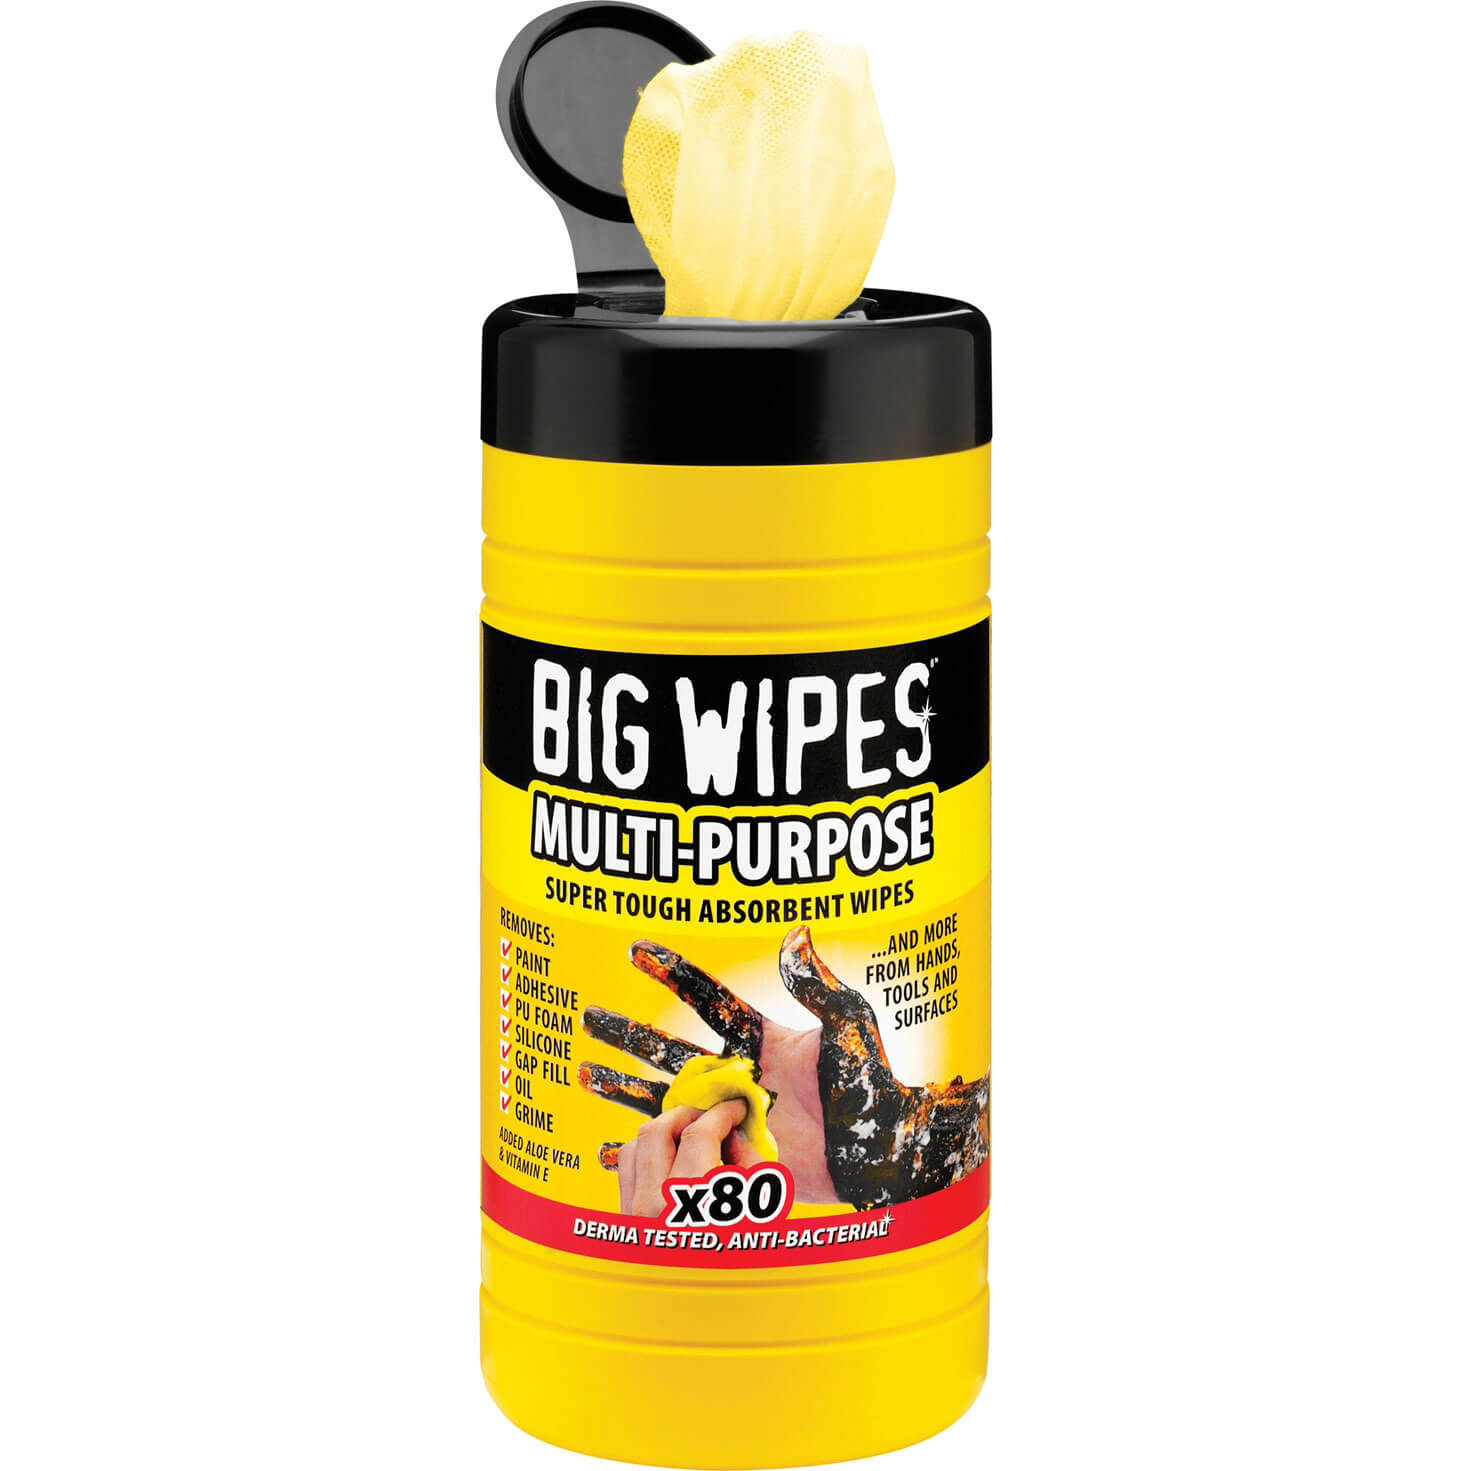 Big Wipes Industrial Cleaning Wipes Tub of 80 Wipes